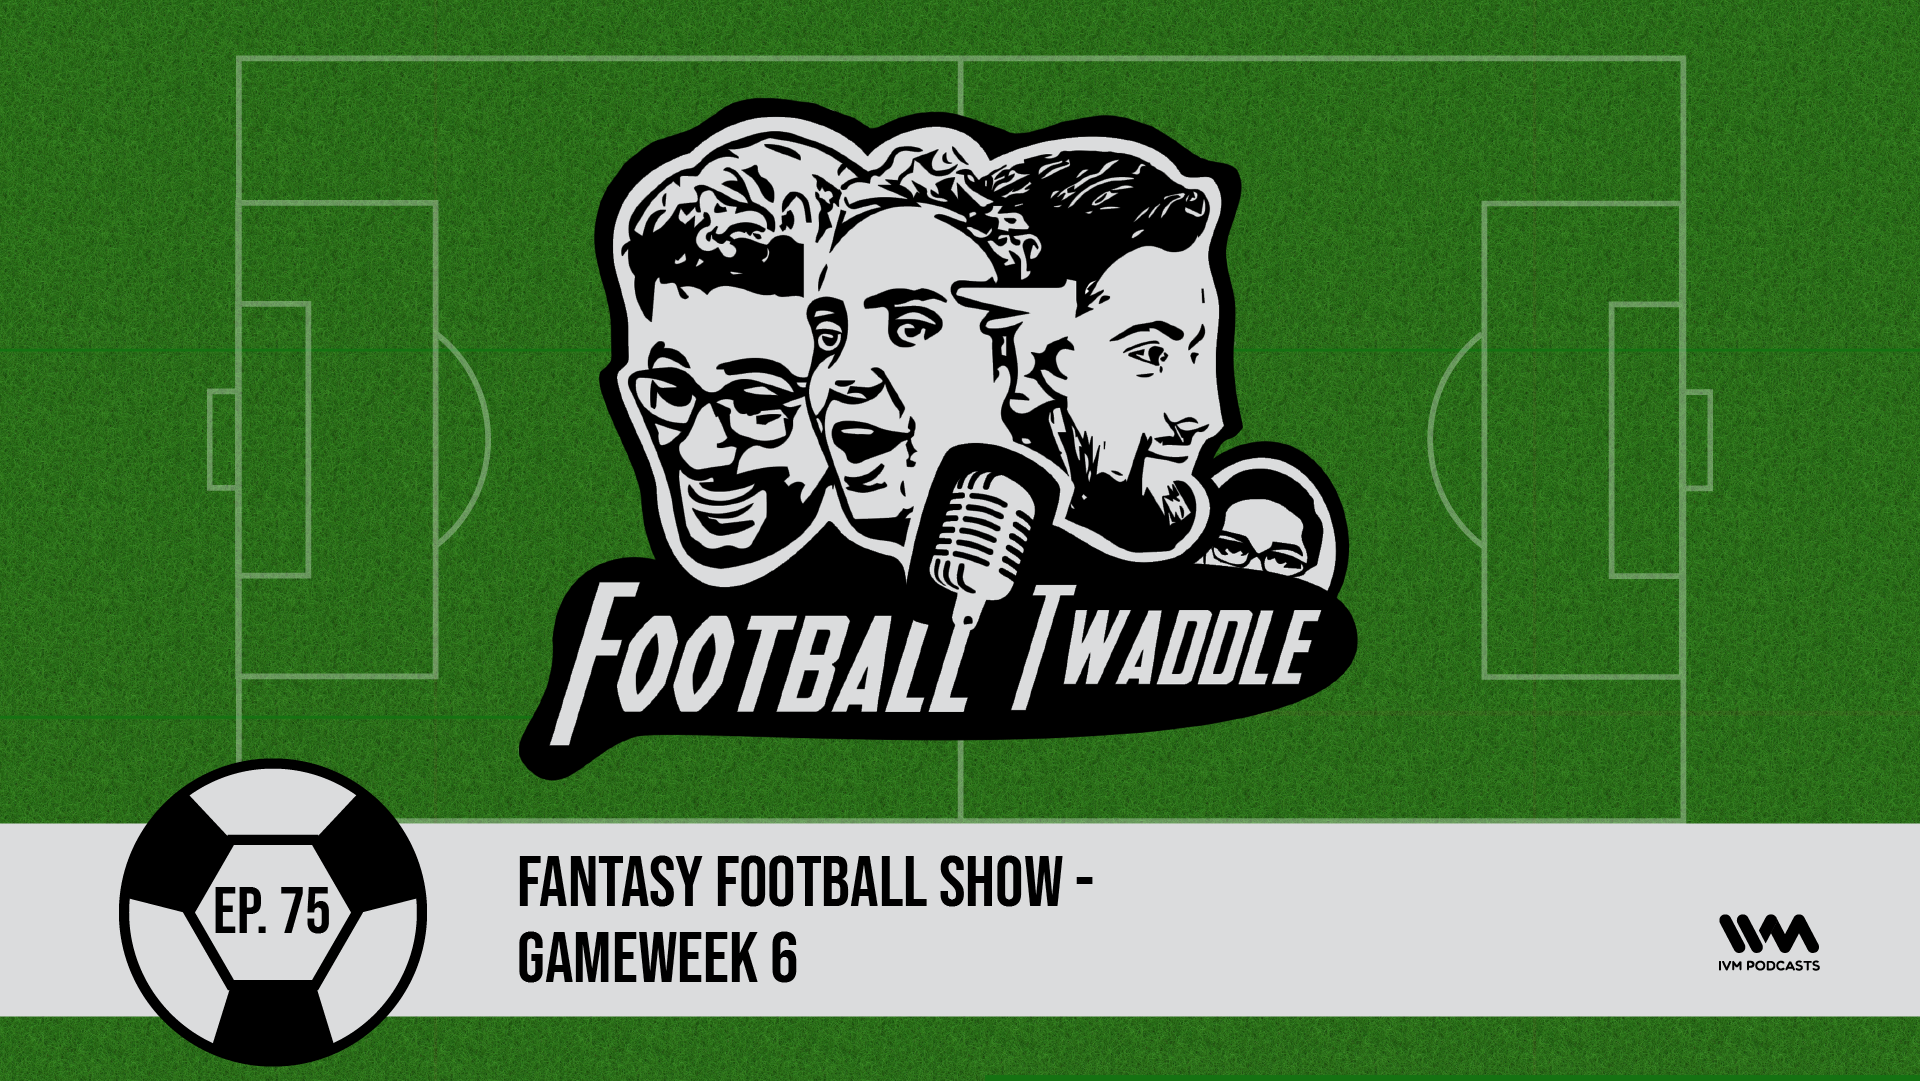 FootballTwaddleEpisode75.png